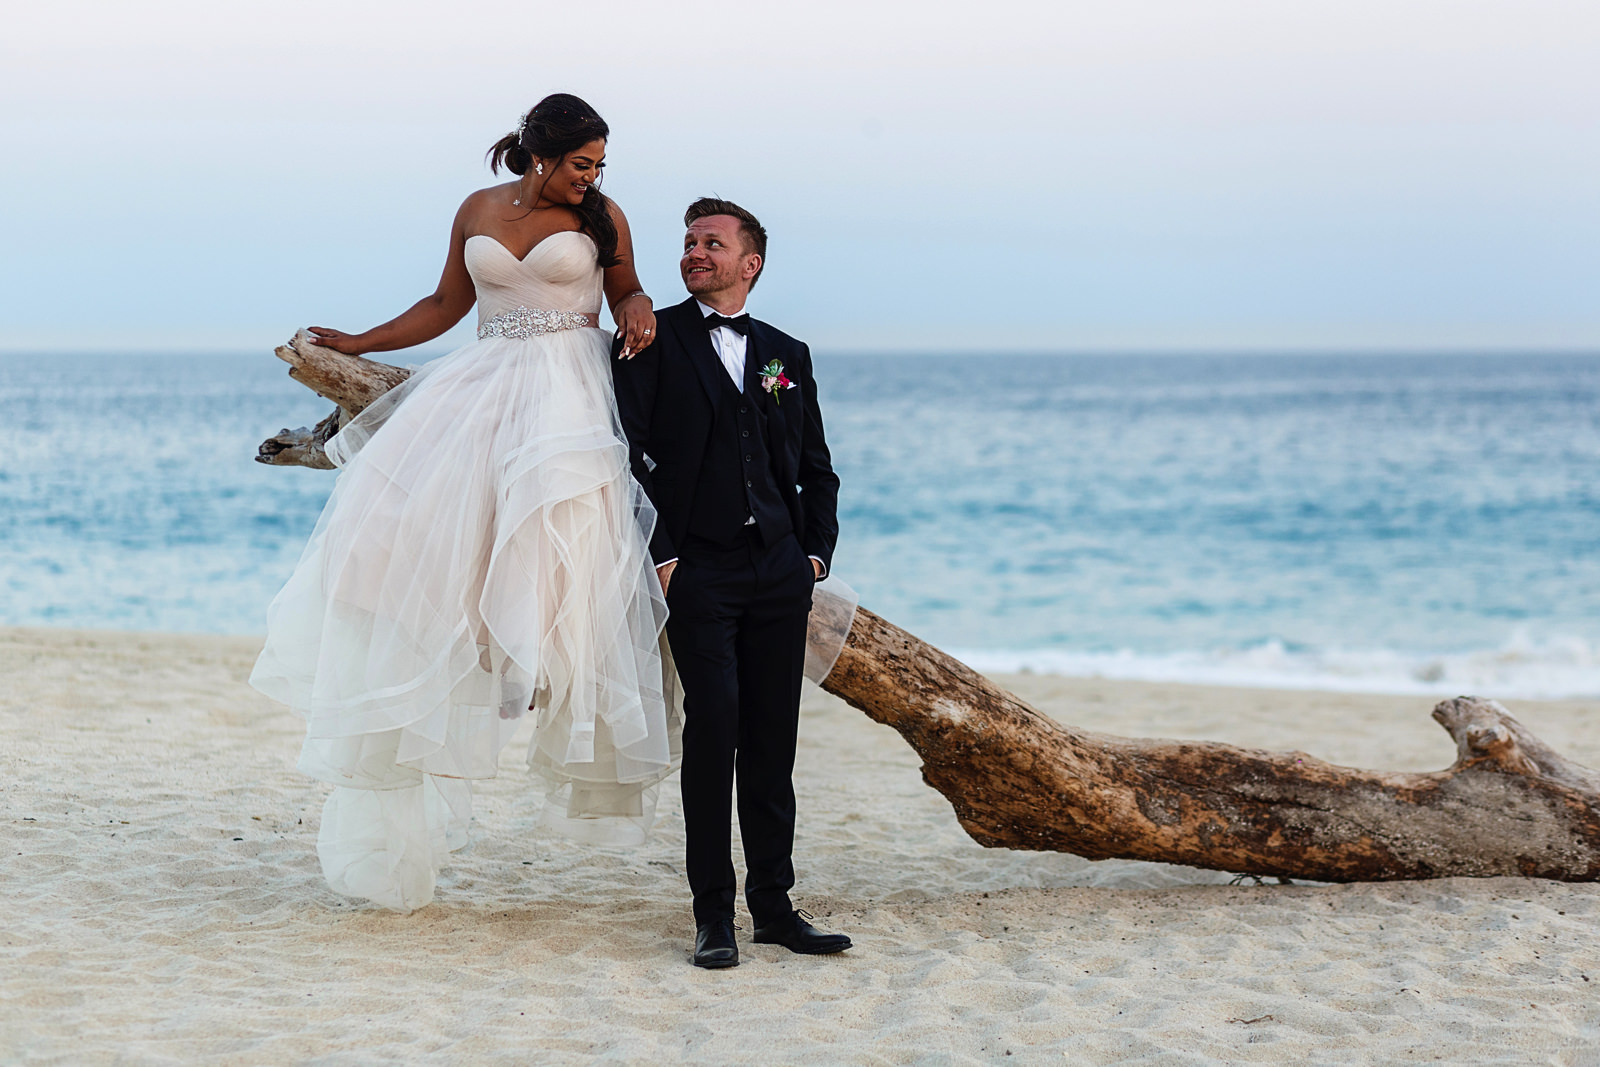 Bride sitting on a log in the beach and groom leaning against it in Cabo San Lucas, Mexico.